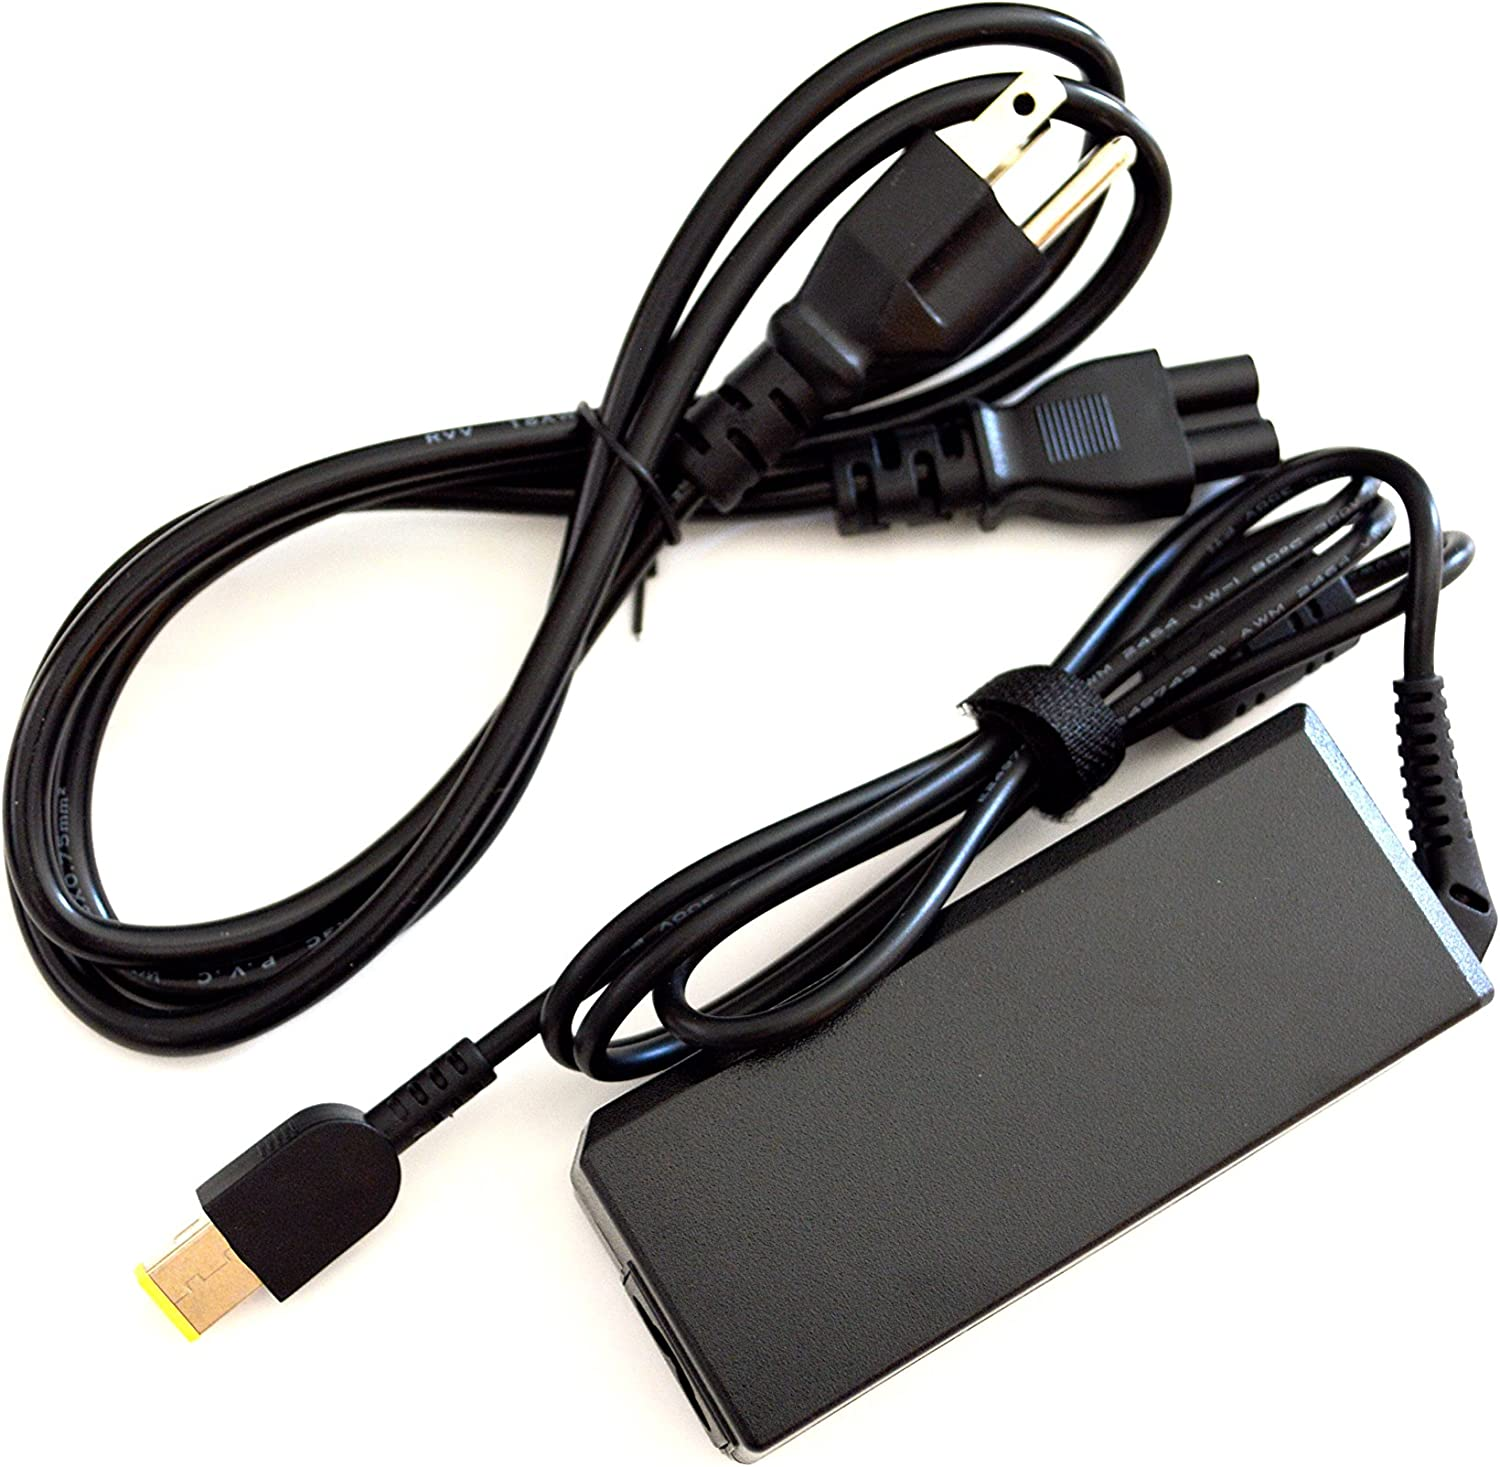 New AC Adapter Charger for Lenovo S21e-20 80M4002MUS Laptop Notebook Ultrabook Battery Power Supply Cord Plug